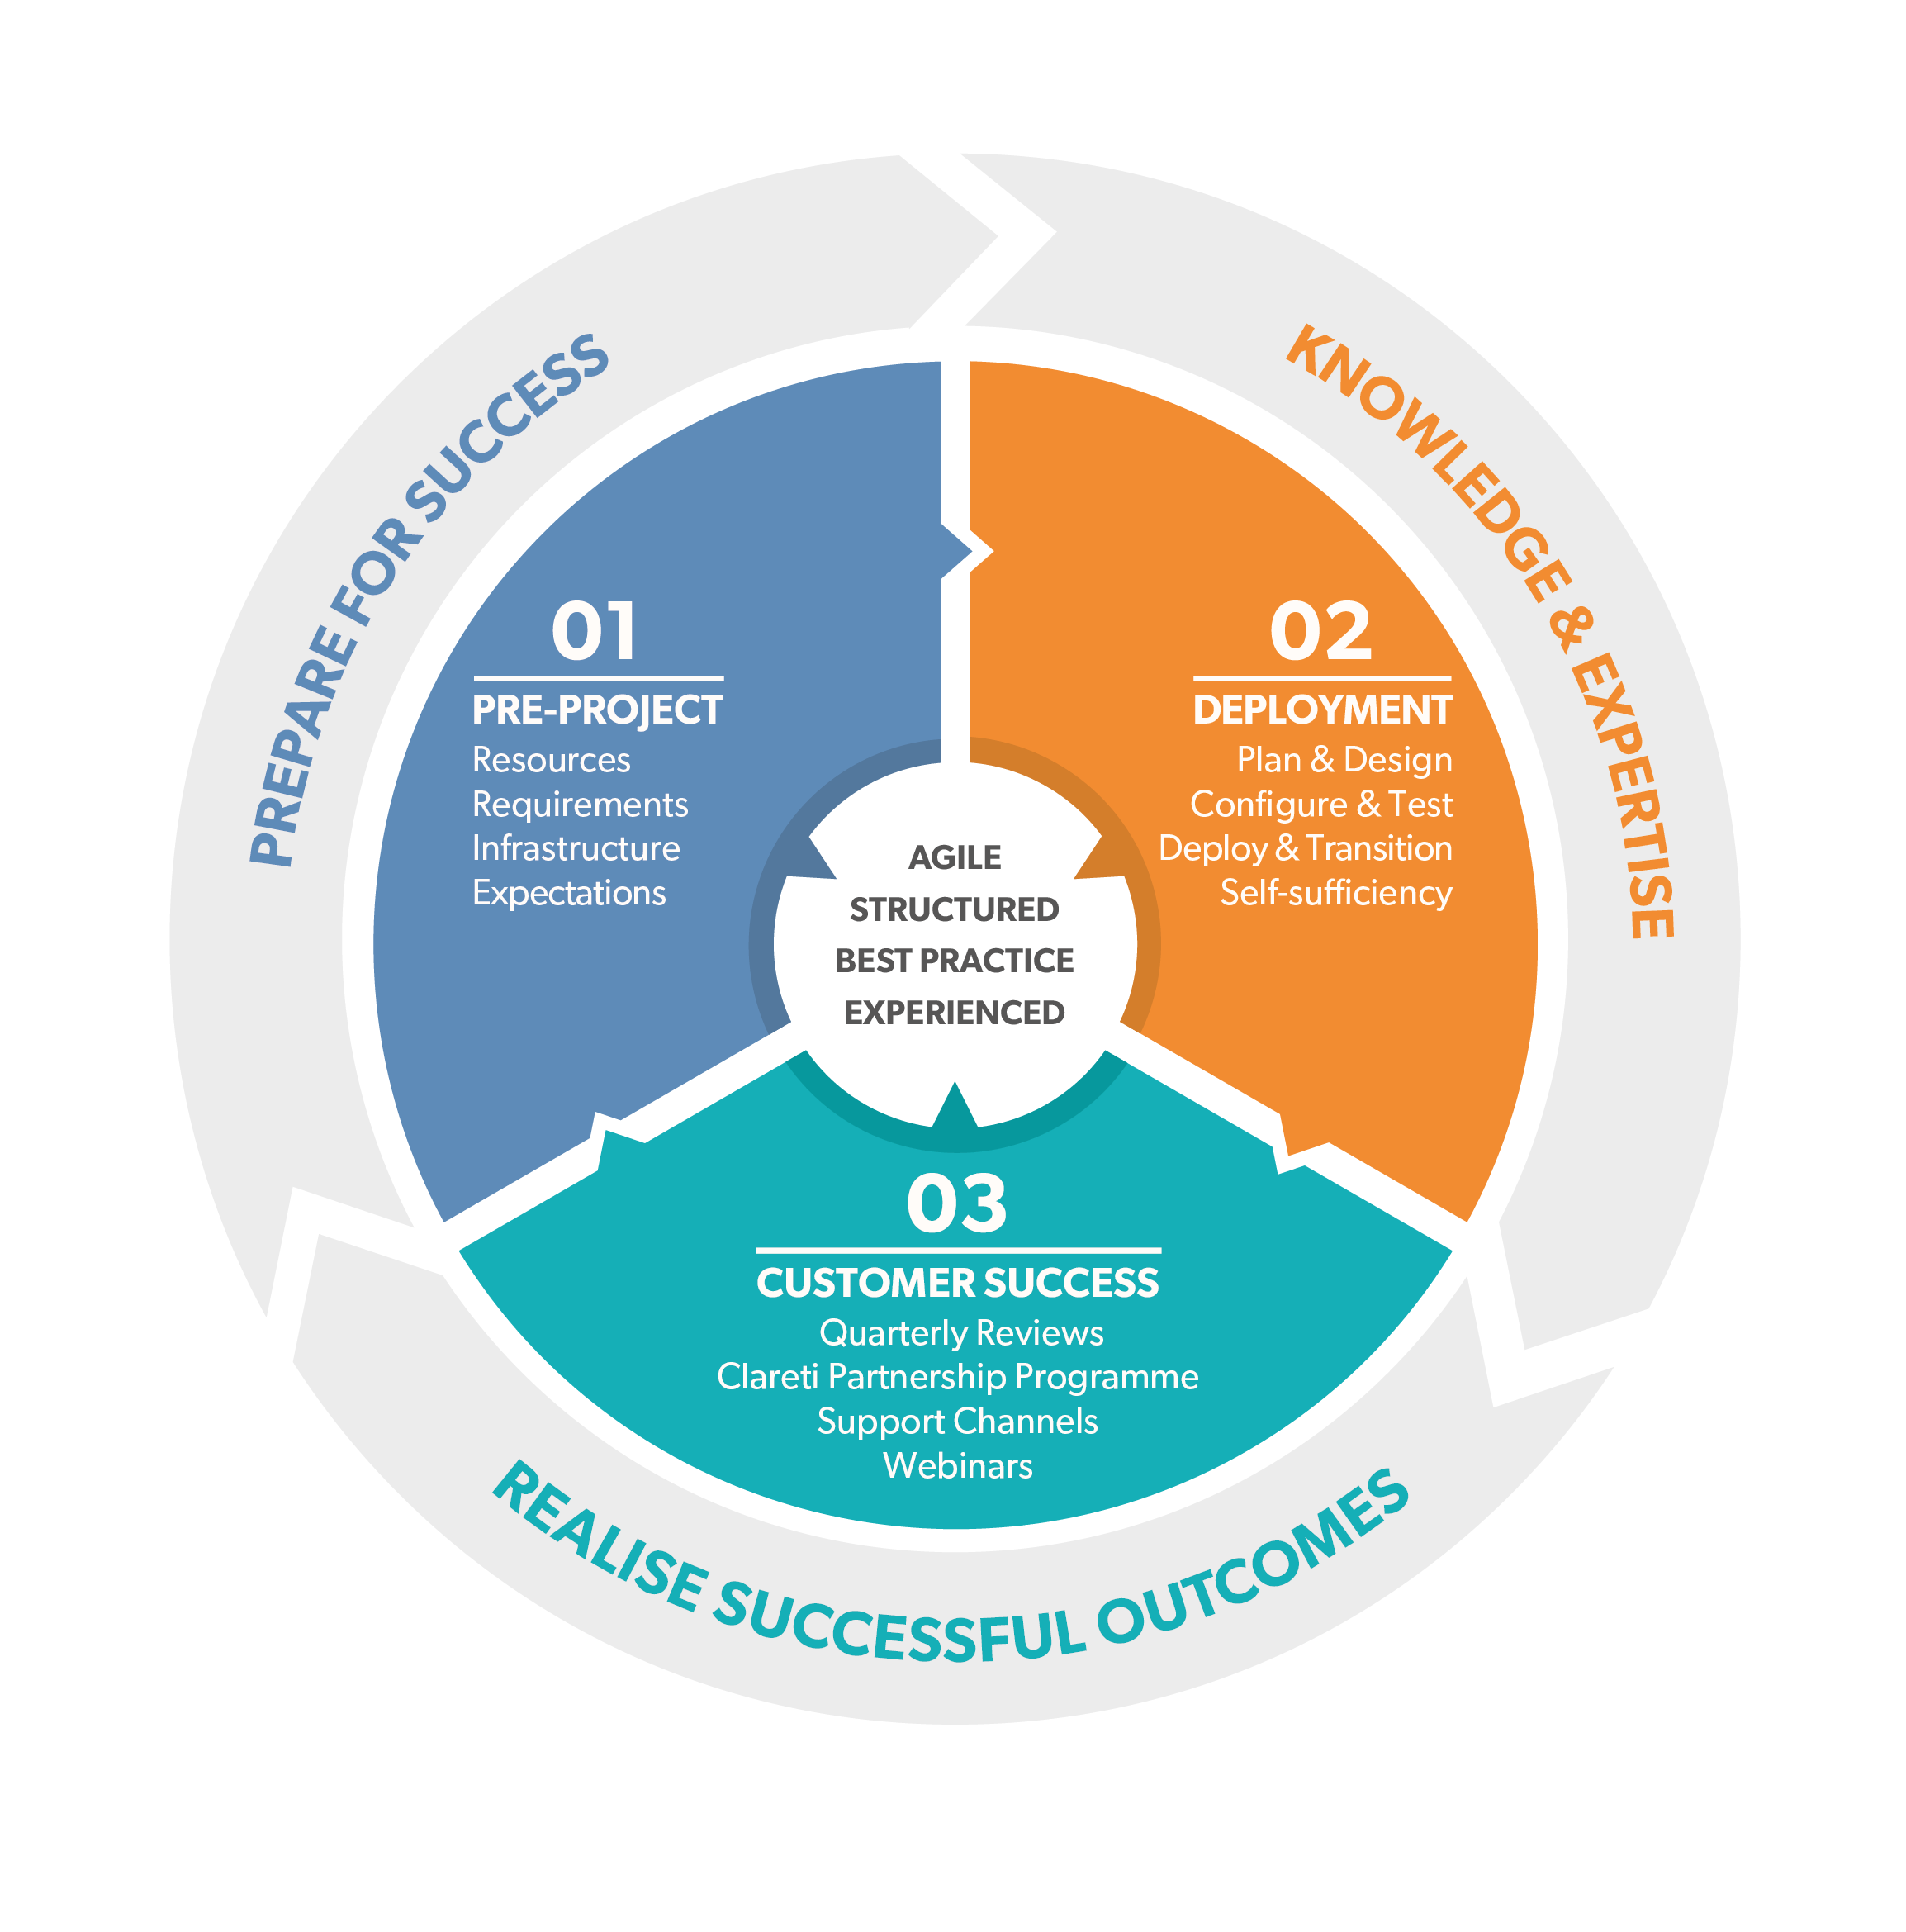 ps_implementation_methodology_infographic